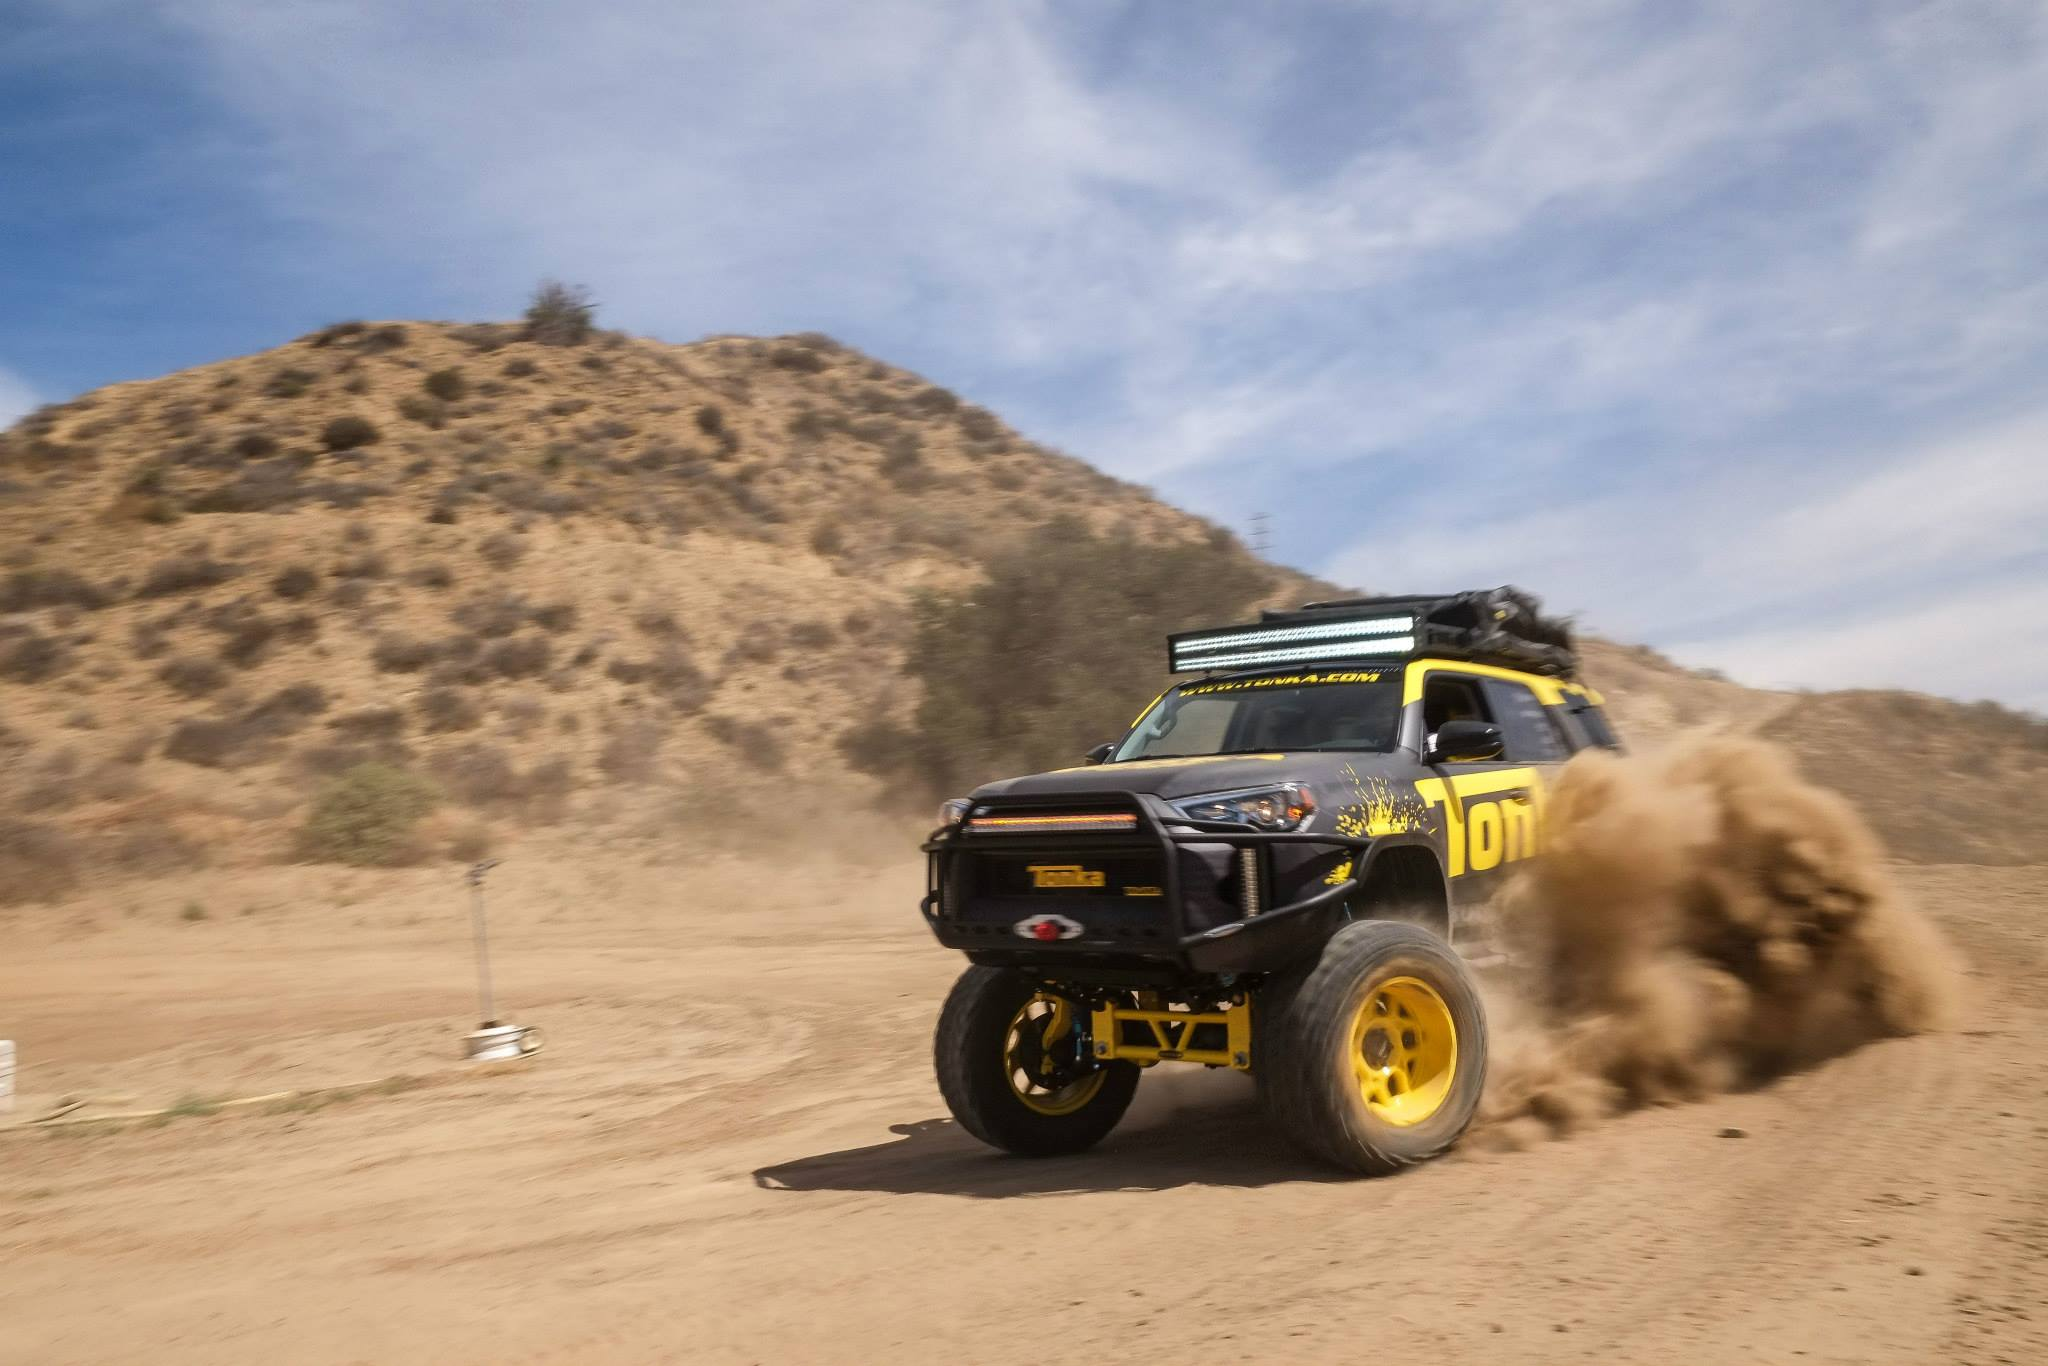 4Runner Turned Tonka Toy Requires a Big Sand Box Toyota Nation